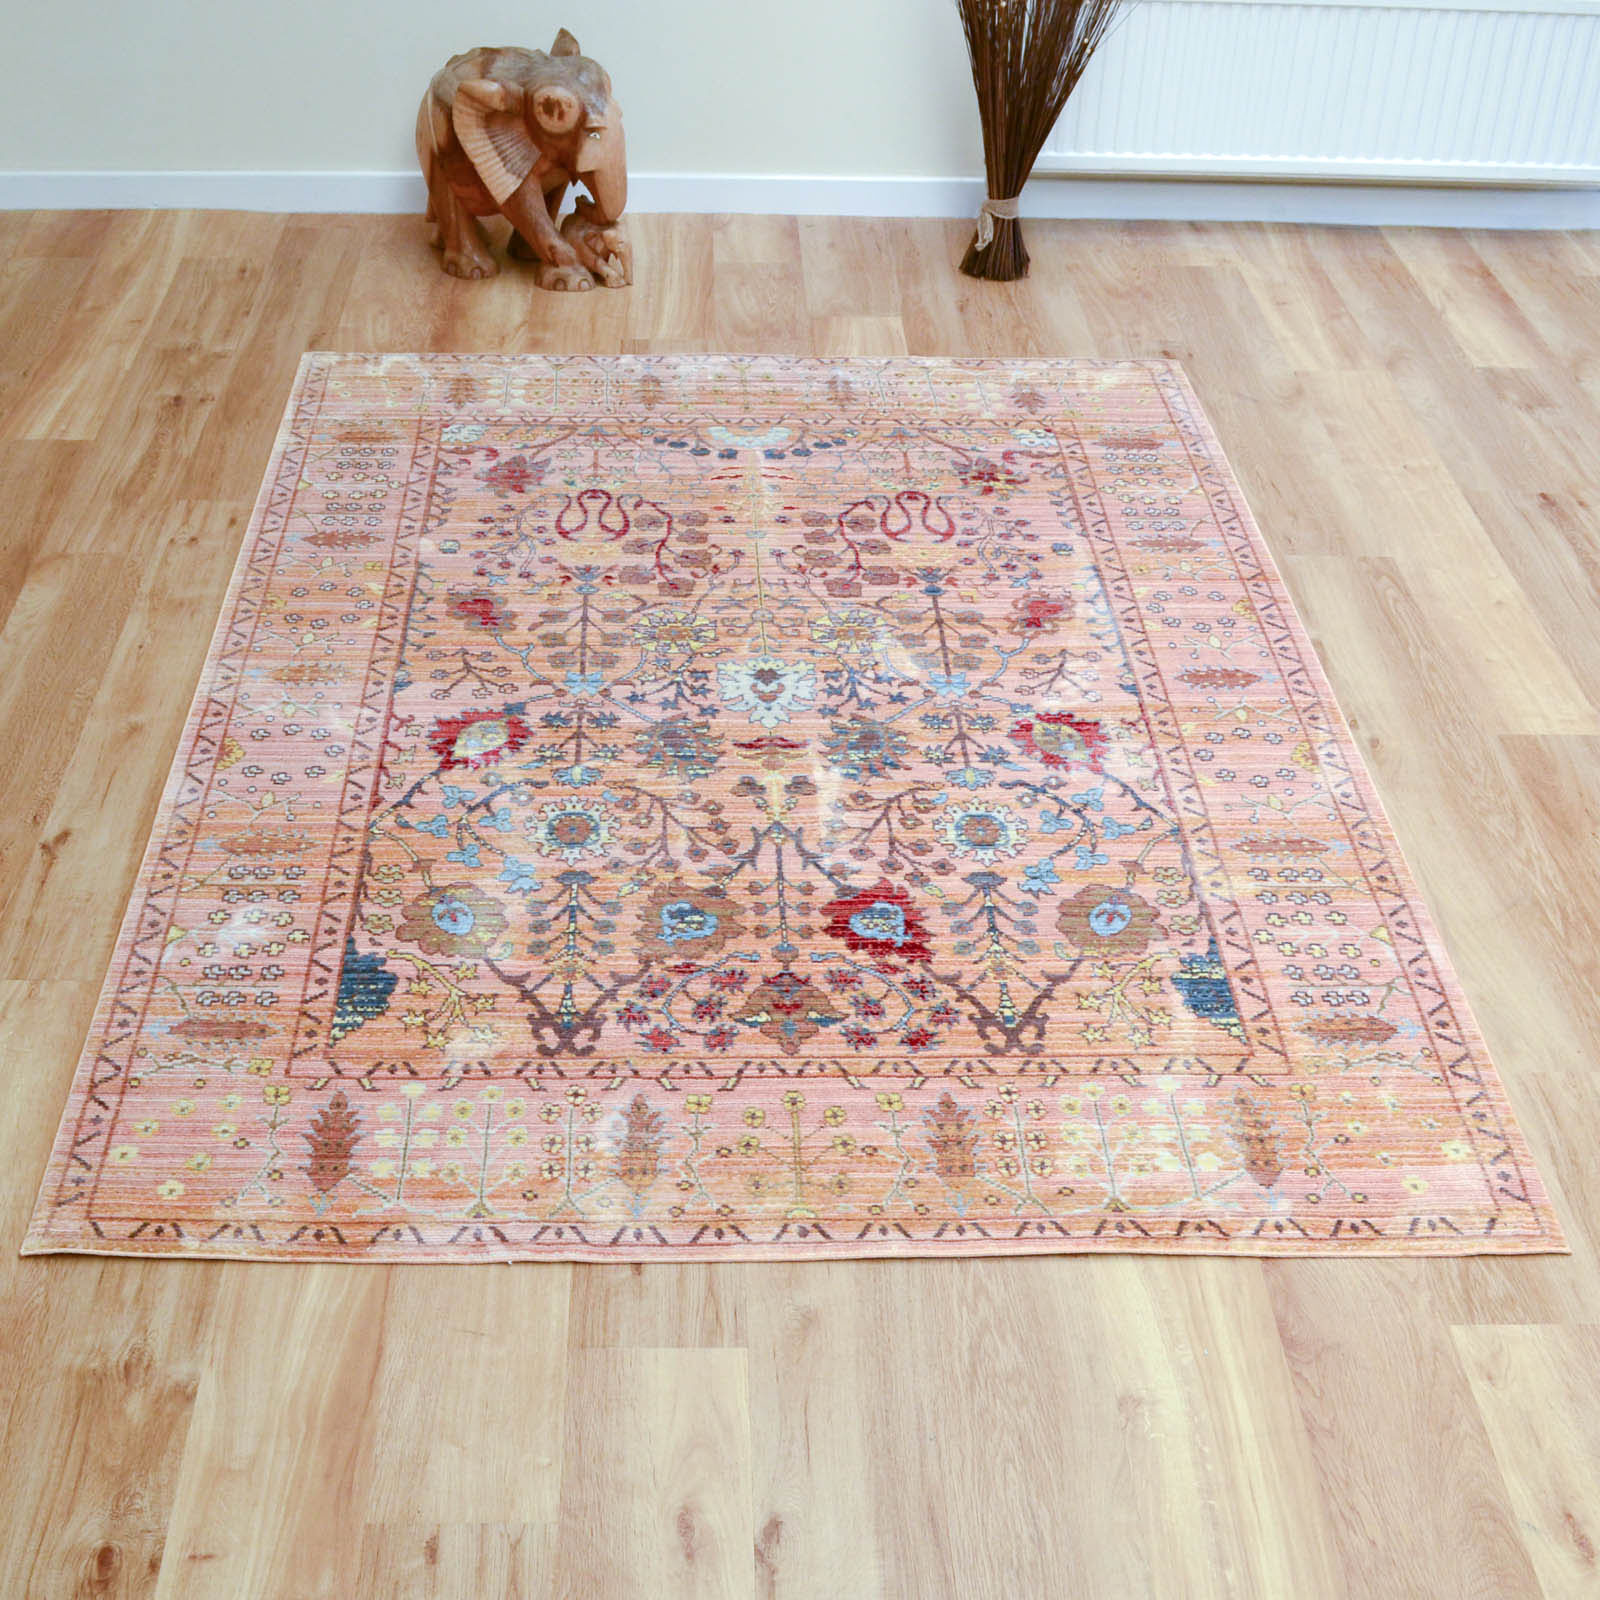 Aqua Silk Traditional Rugs B050b in Beige and Orange